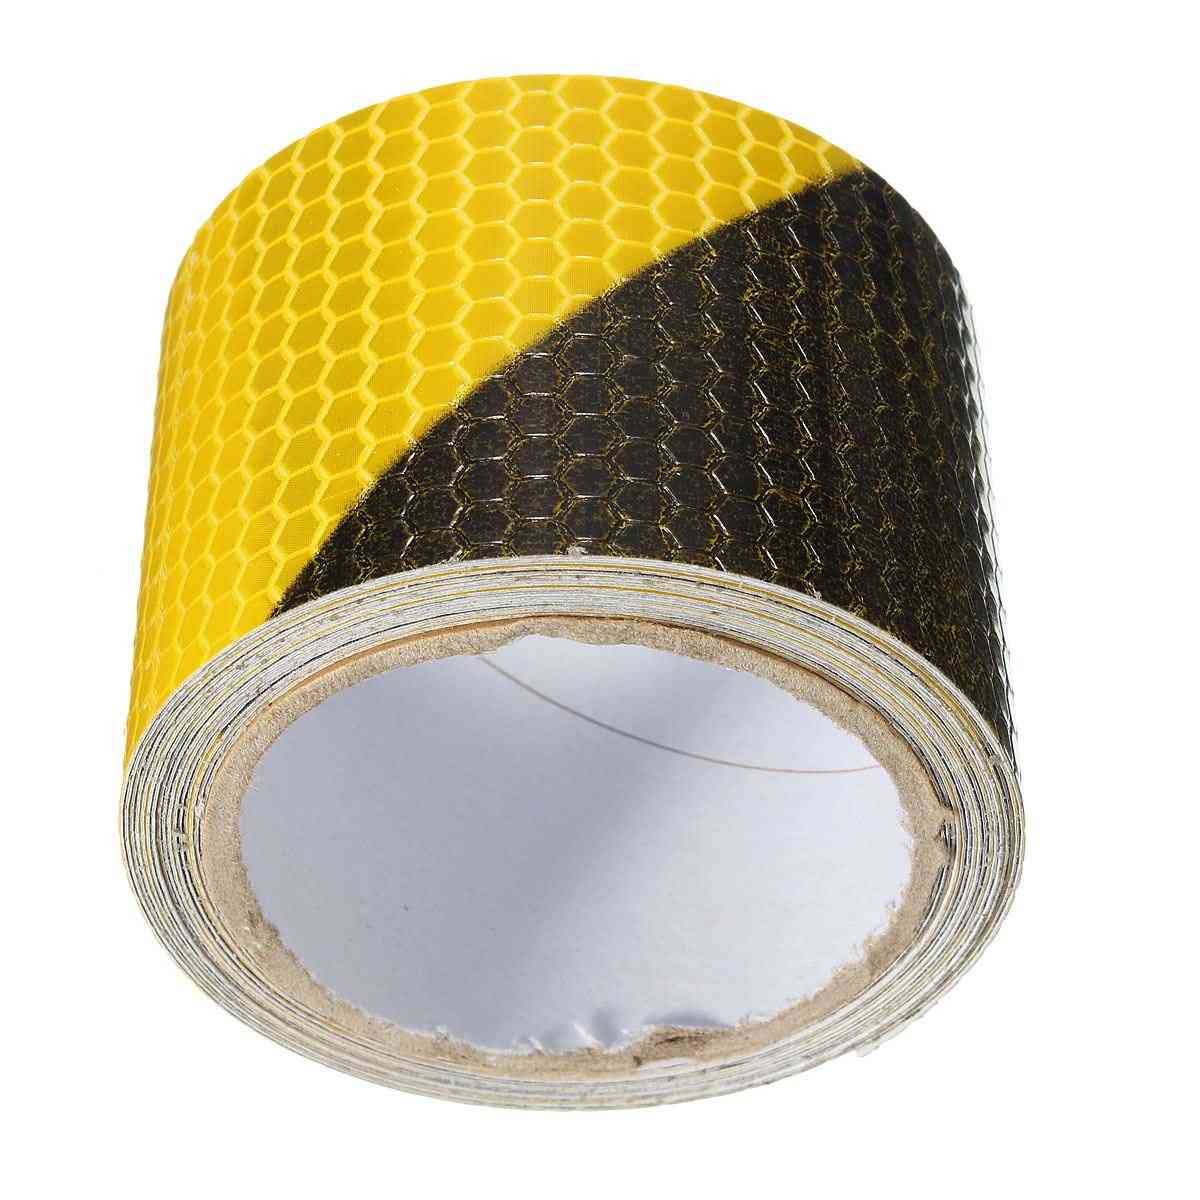 Reflective Safety Warning Conspicuity Tape, Film Sticker